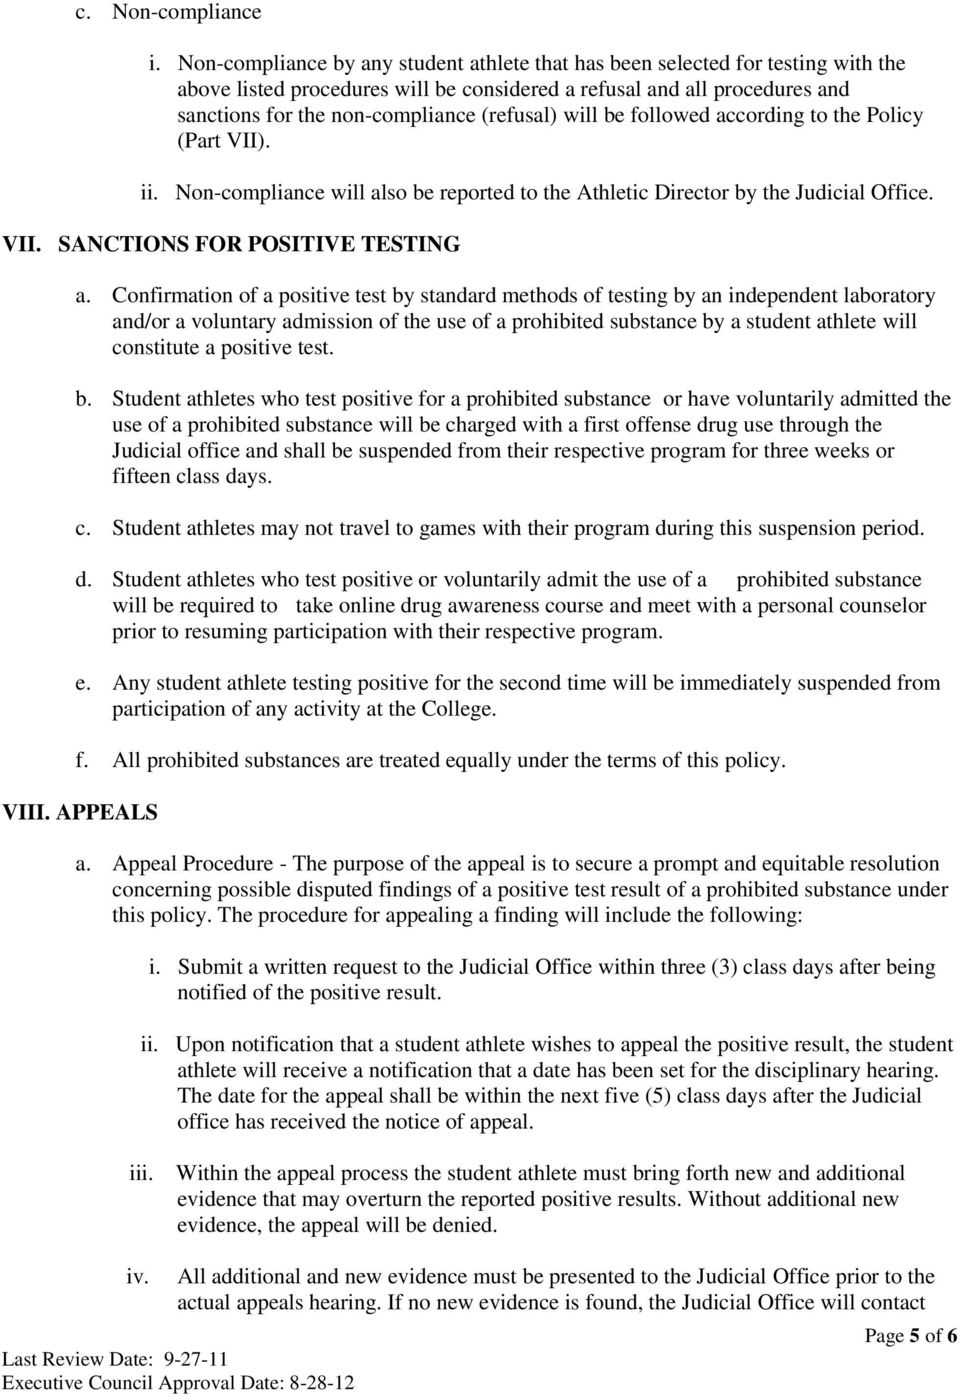 (refusal) will be followed according to the Policy (Part VII). ii. Non-compliance will also be reported to the Athletic Director by the Judicial Office. VII. SANCTIONS FOR POSITIVE TESTING a.